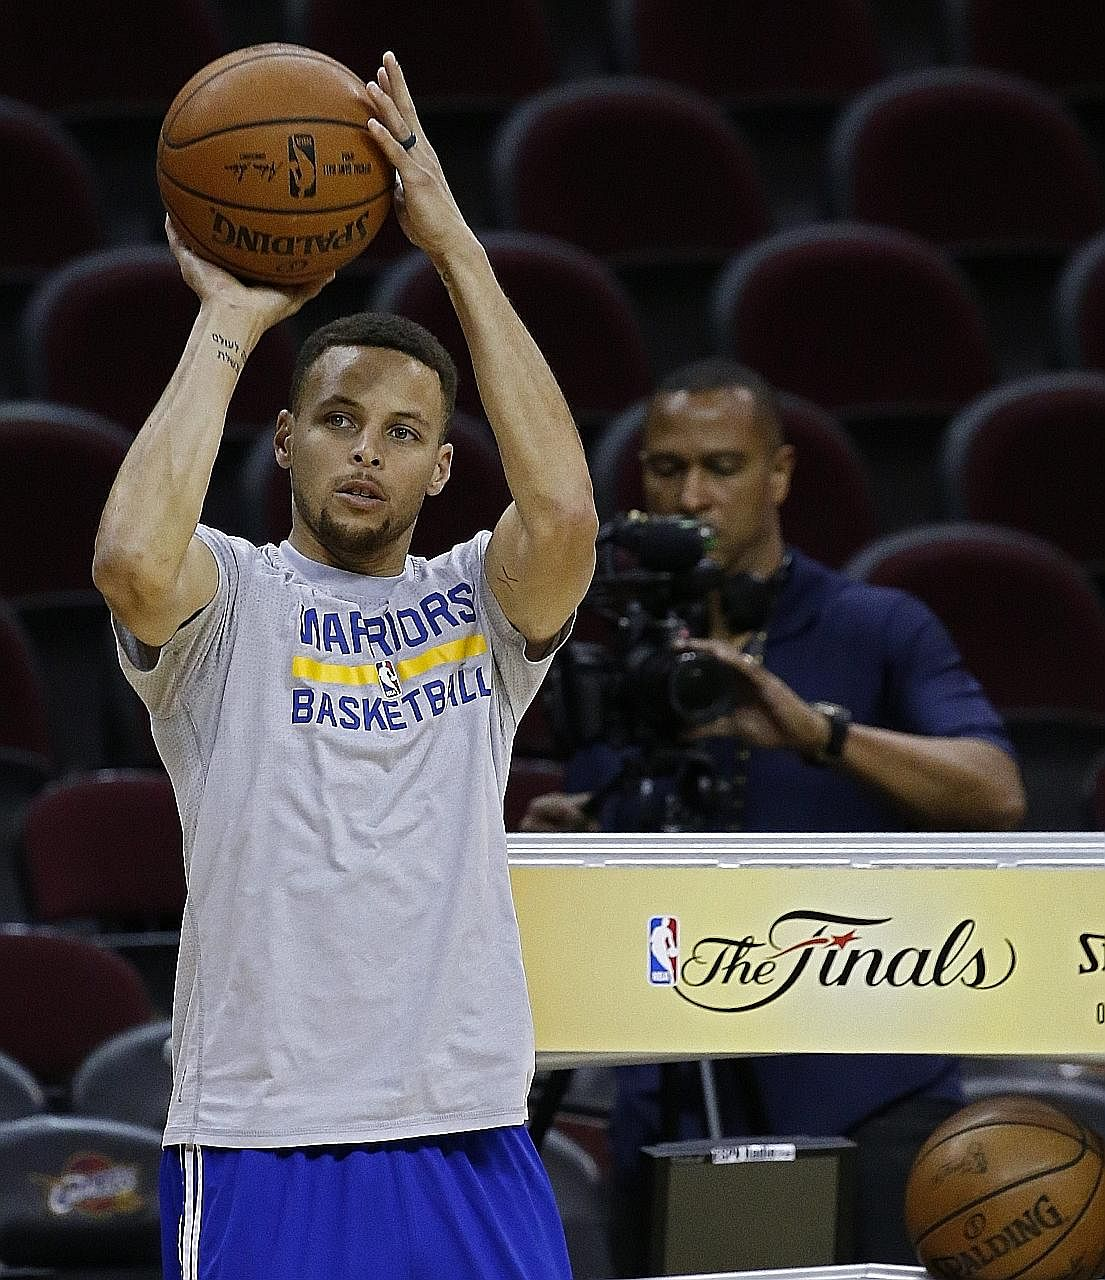 A pensive Golden State Warriors point guard Stephen Curry in practice on Thursday in Cleveland, ahead of today's Game 4 against the Cavaliers. With the Warriors' Finals series lead cut to 2-1, pressure is mounting for the two-time Most Valuable Playe